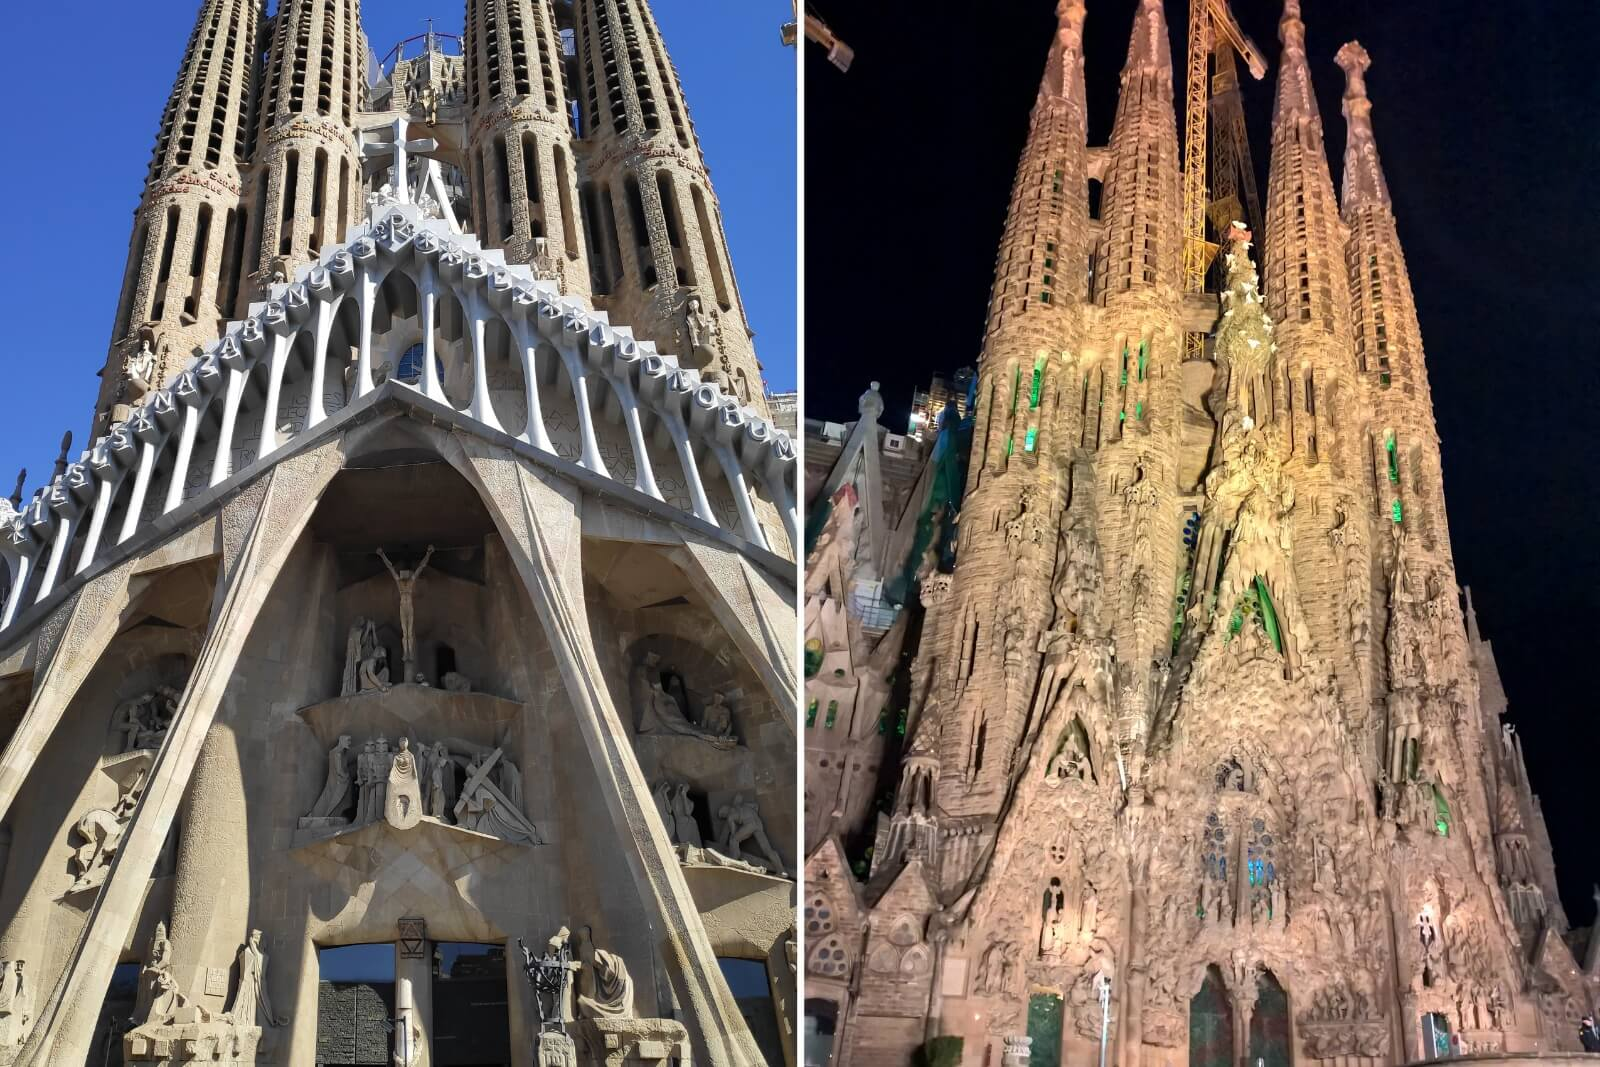 Top 10 virtual tours of Spain - 2. Sagrada Familia